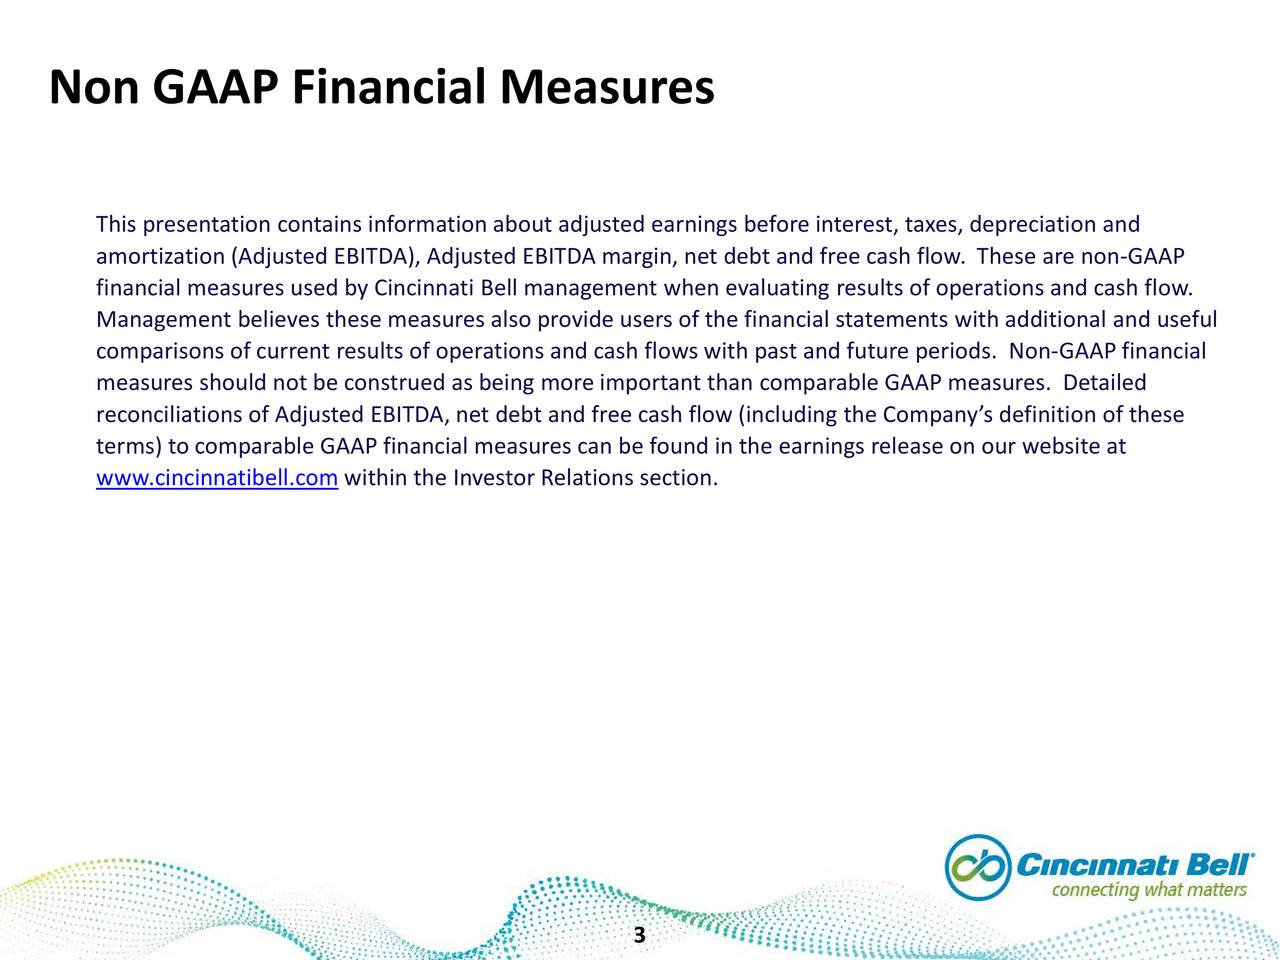 Non GAAP Financial Measures This presentation contains information about adjusted earnings before interest, taxes, depreciation and amortization (Adjusted EBITDA), Adjusted EBITDA margin, net debt and free cash flow.GAAPse are non- financial measures used by Cincinnati Bell management when evaluating results of operations and cash flow. Management believes these measures also provide users of the financial statements with additional and useful comparisons of current results of operations and cash flowswith past and future periods. Non-GAAP financial measures should not be construed as being more important than comparable GAAP measures. Detailed reconciliations of Adjusted EBITDA, net debt and free cash flow (including the Companys definition of these terms) to comparable GAAP financial measures can be found in the earnings release on our website at www.cincinnatibell.comwithin the Investor Relations section. 3